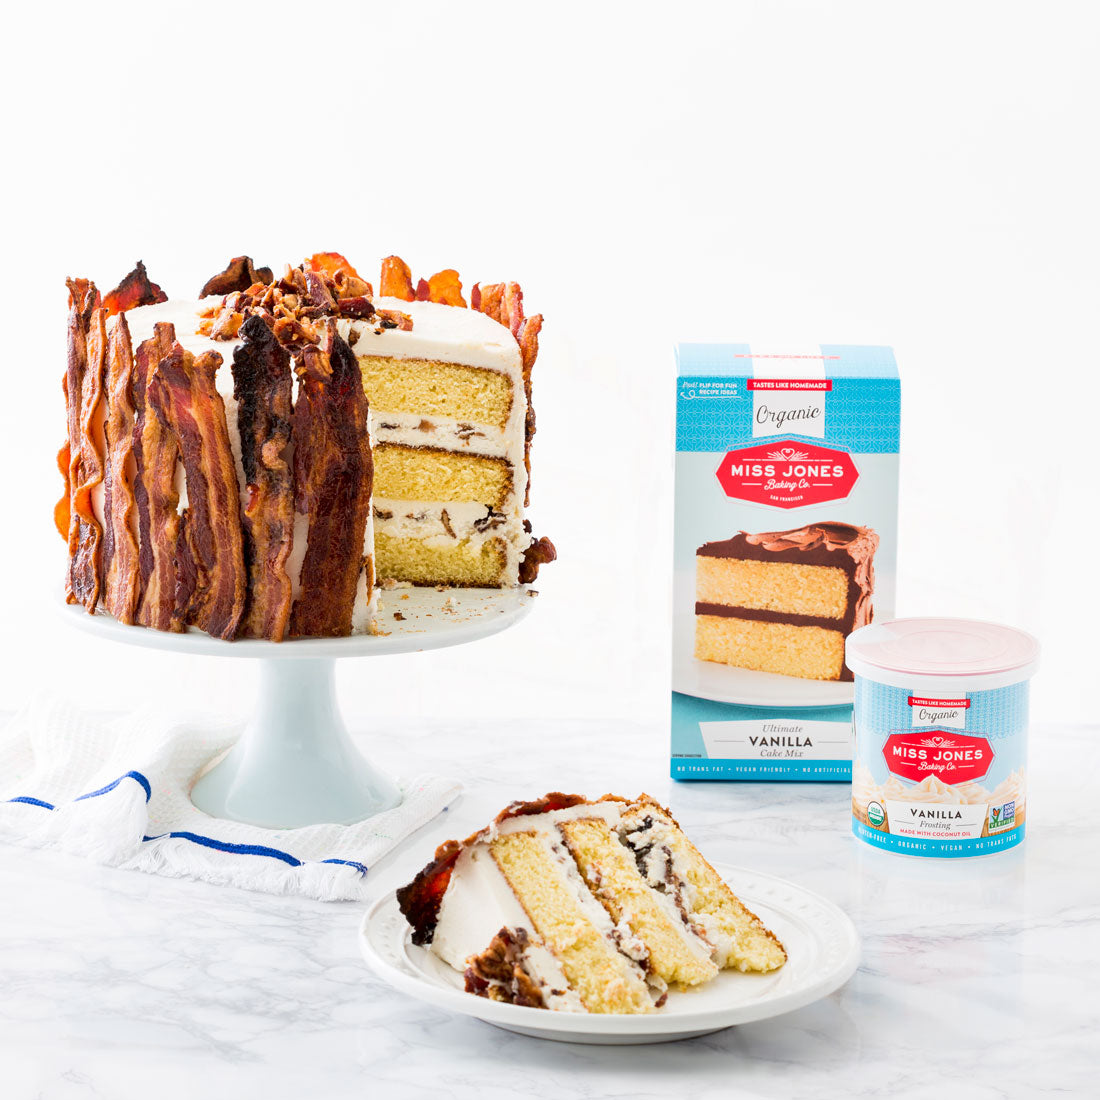 Image of side of Miss Jones Baking Co Epic Father's Day 3-Layer Bacon and Beer Cake on a cake stand with a slice on a plate below, next to a box of Miss Jones Vanilla Cake Mix and a jar of Miss Jones Vanilla Frosting